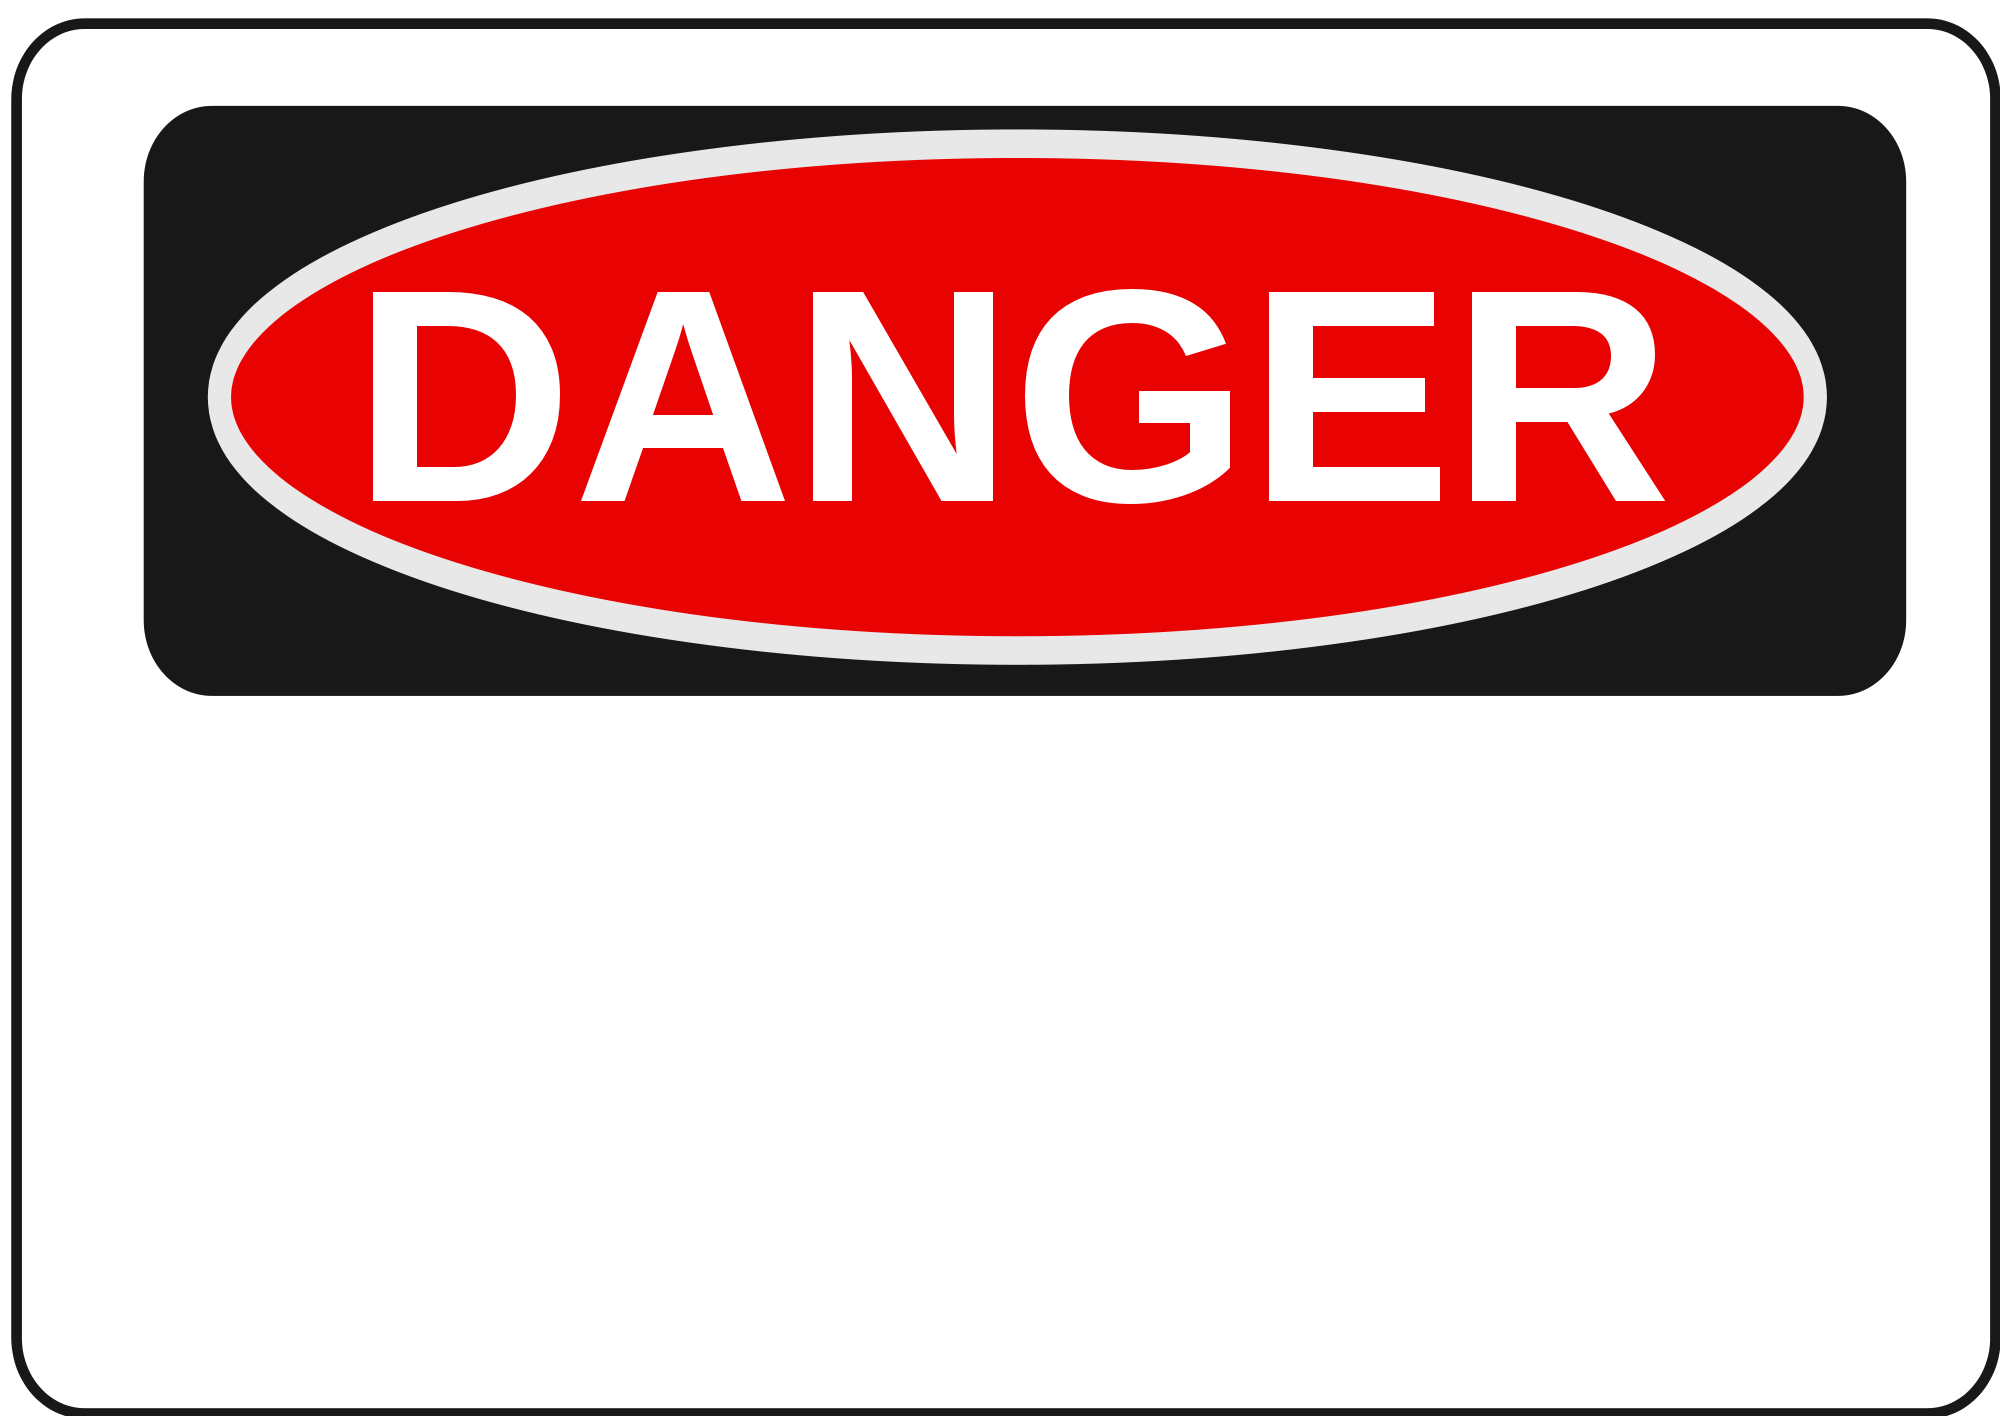 Danger clipart warning. Sign shop of library